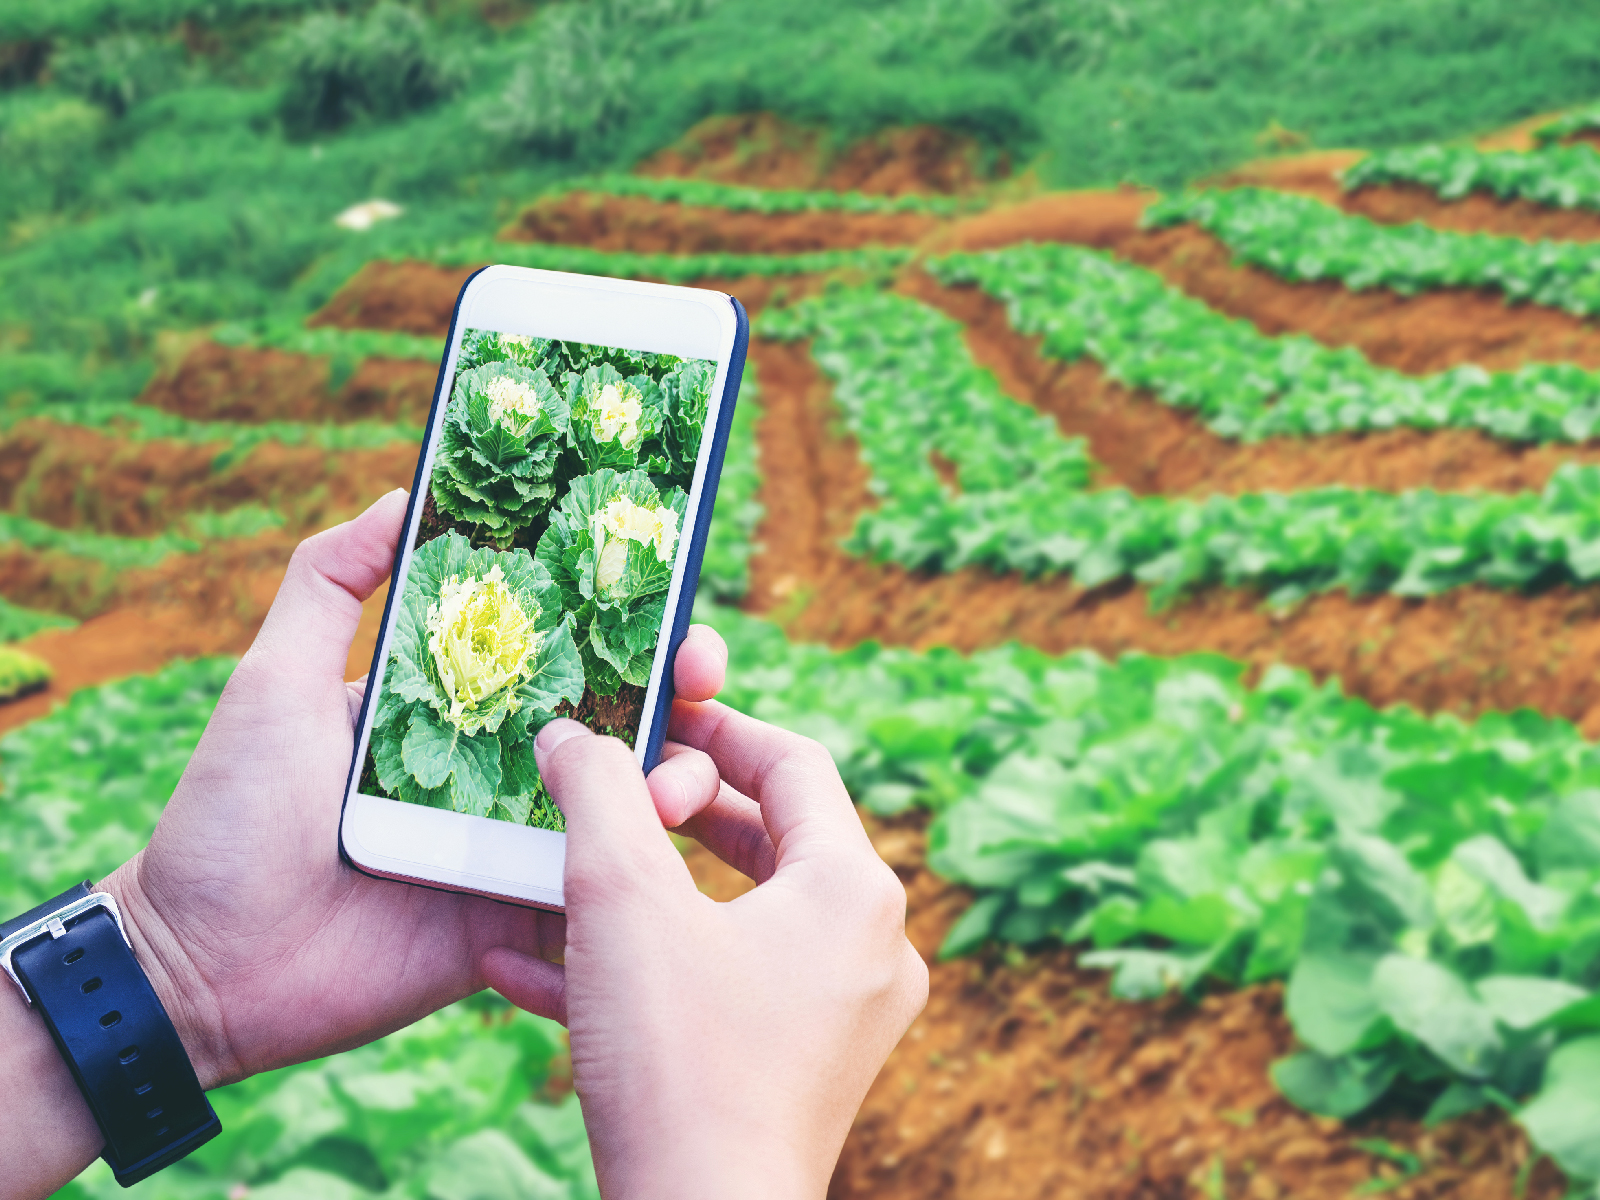 Some Farmers Are Making More Money on YouTubeThanfrom Their Farms